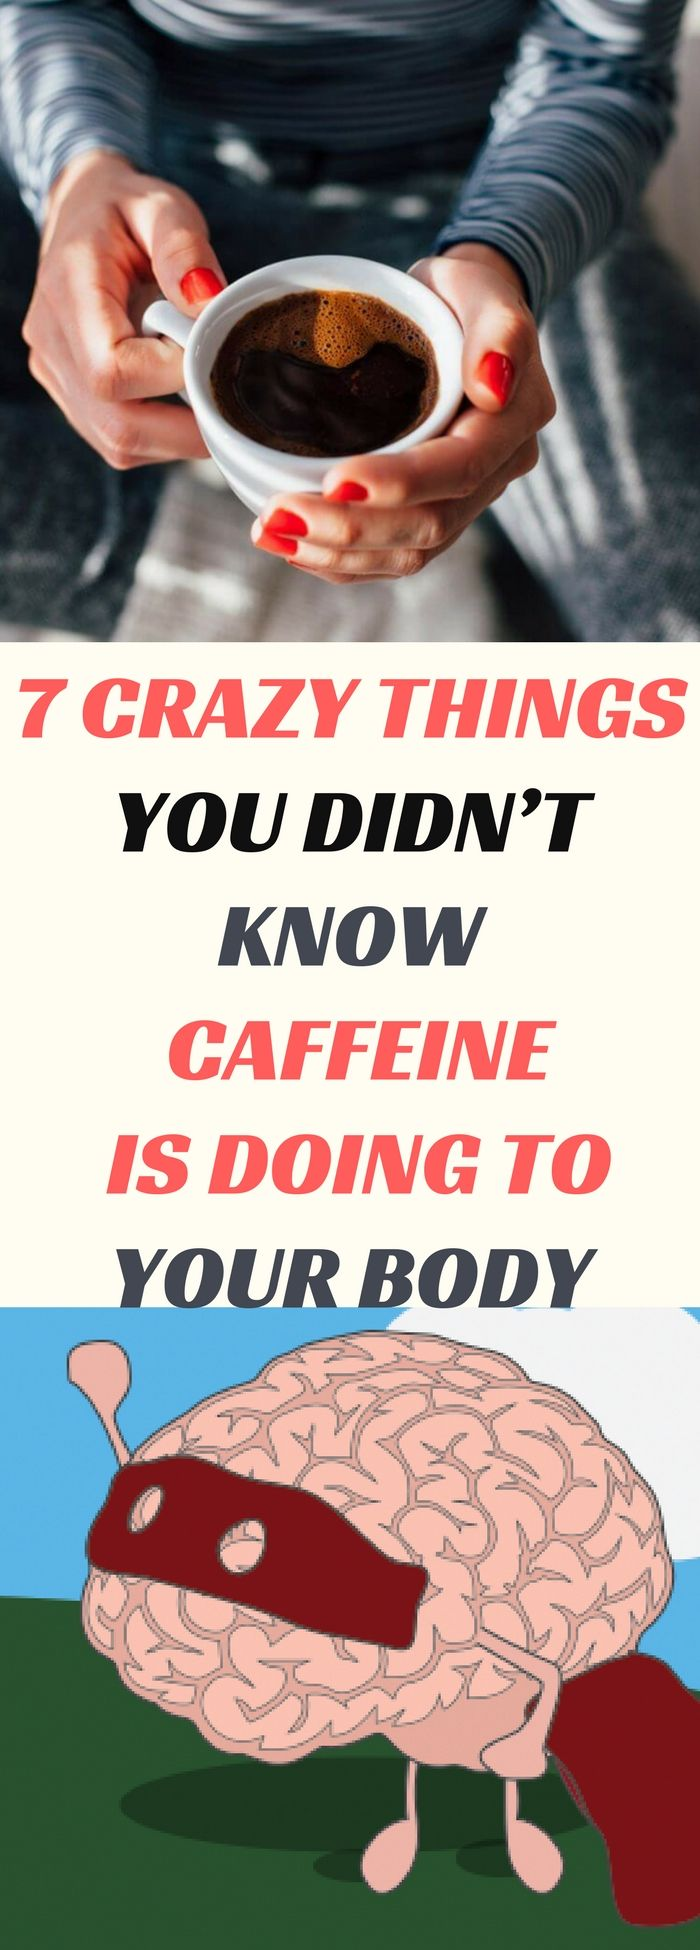 7 Crazy Things You Didn't Know Caffeine Is Doing to Your Body!! Read this carefully.!!!